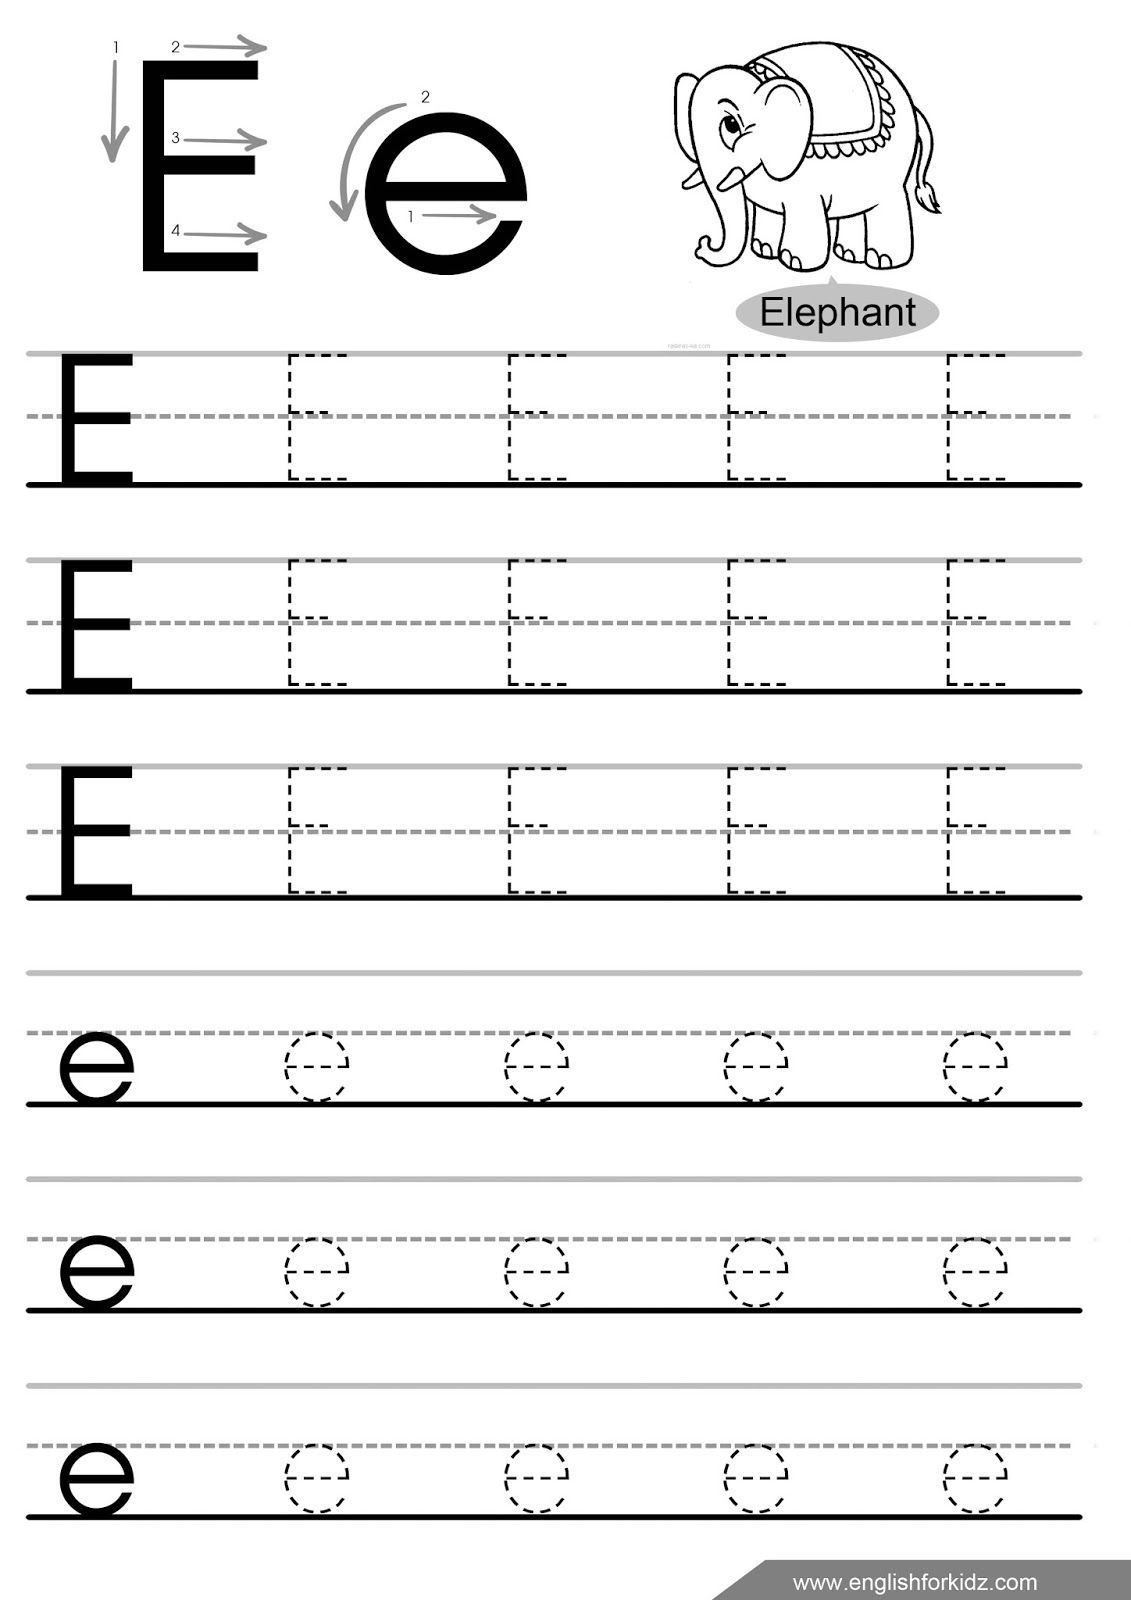 Letter Tracing Worksheets Letters A J | Letter Tracing intended for E Letter Tracing